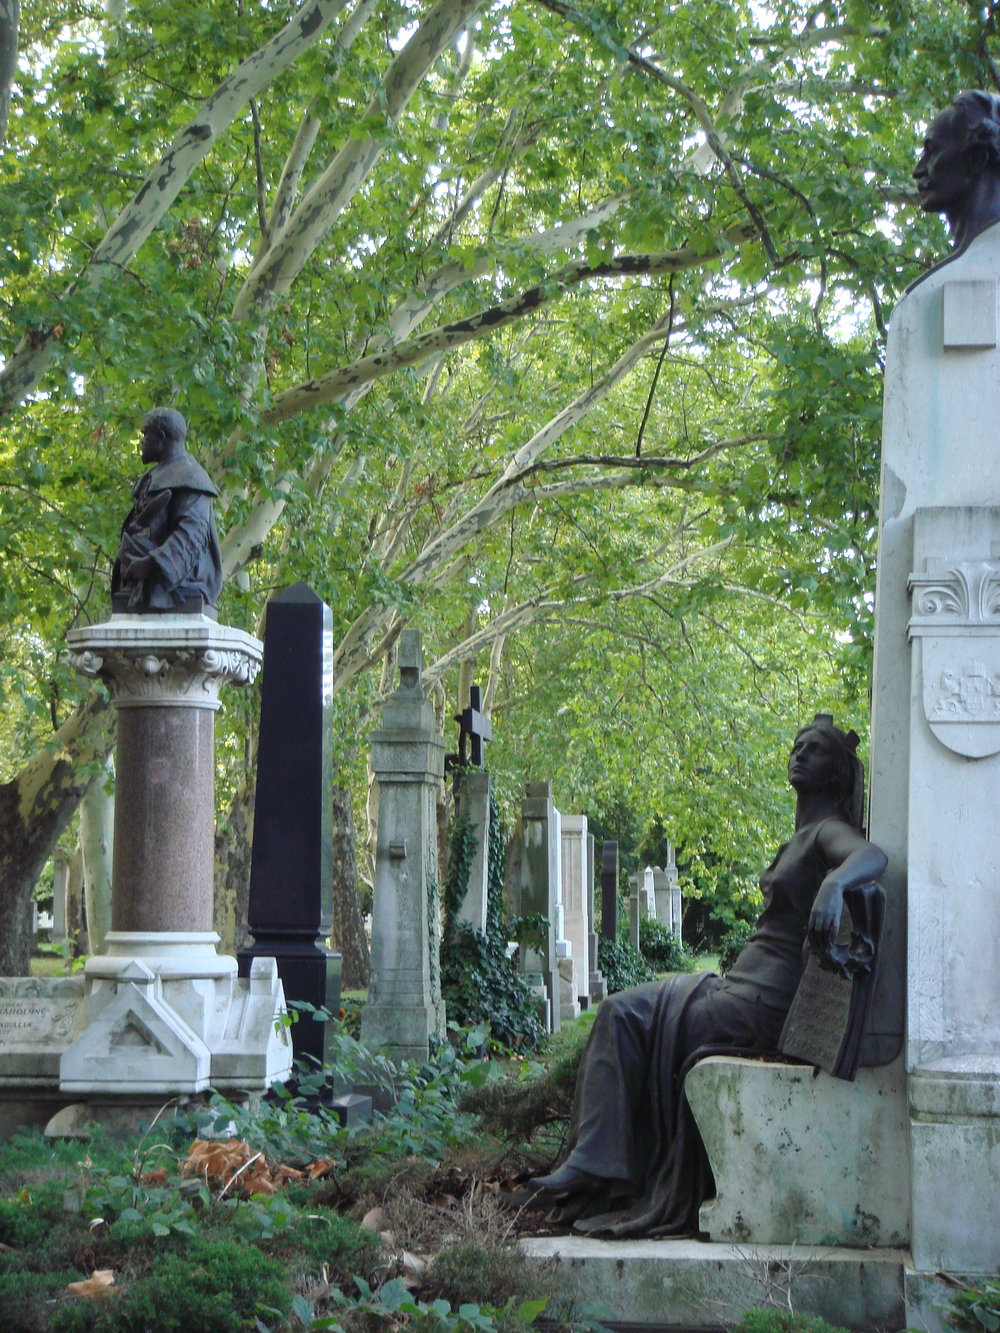 Unconventional Tourist Attraction: Exploring European Cemeteries